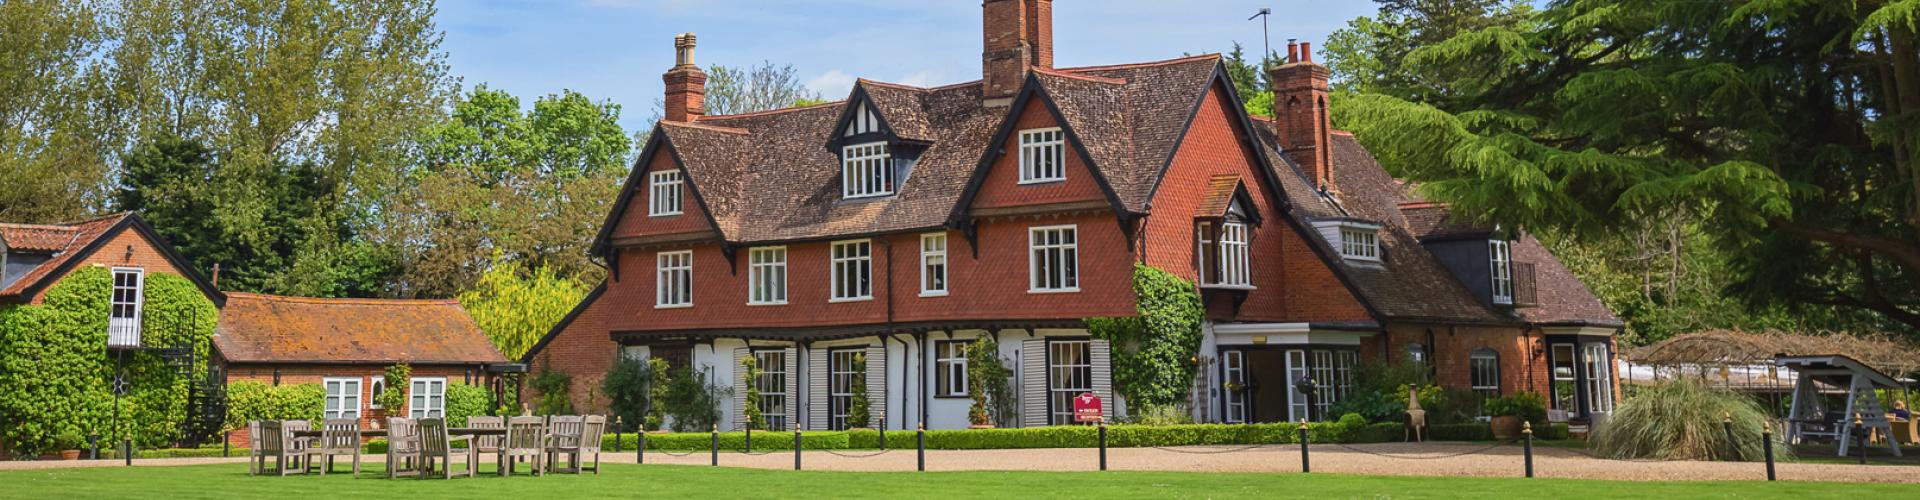 Ravenwood Hall Hotel - Rougham